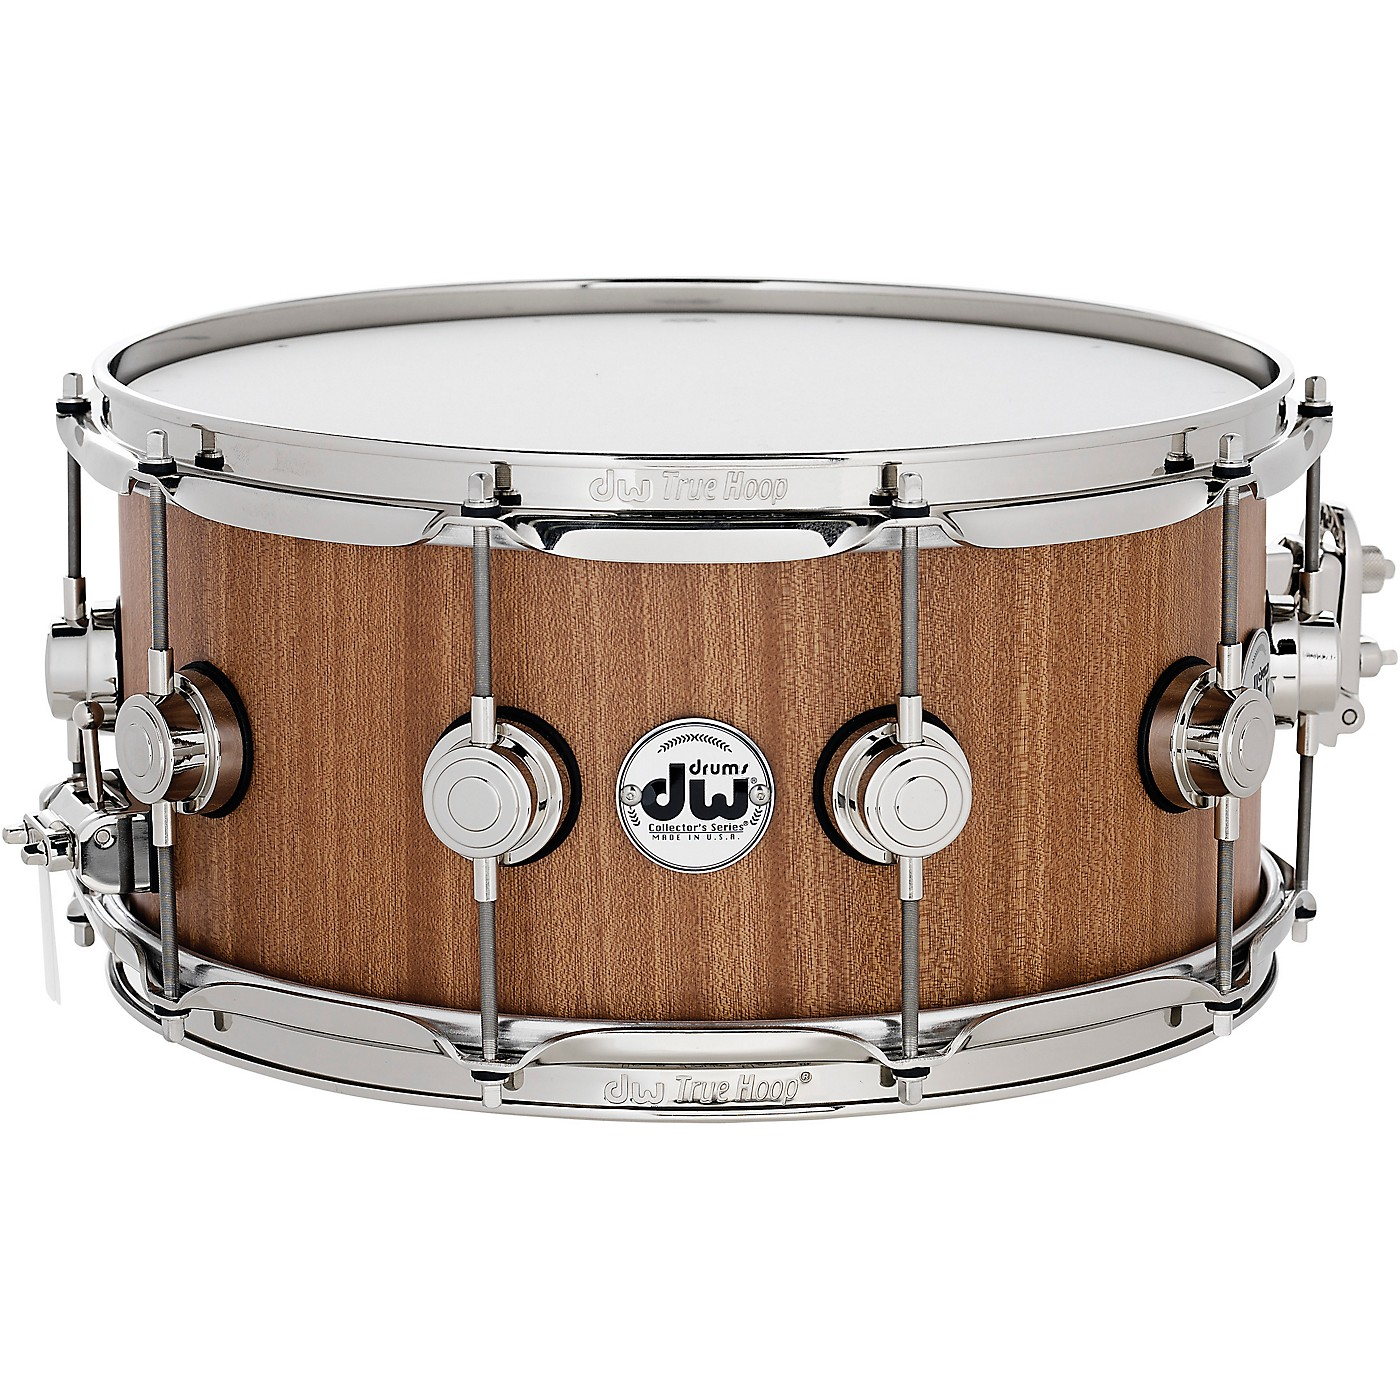 DW Cherry Mahogany Natural Lacquer with Nickel Hardware Snare Drum 14 x 6.5 in. thumbnail